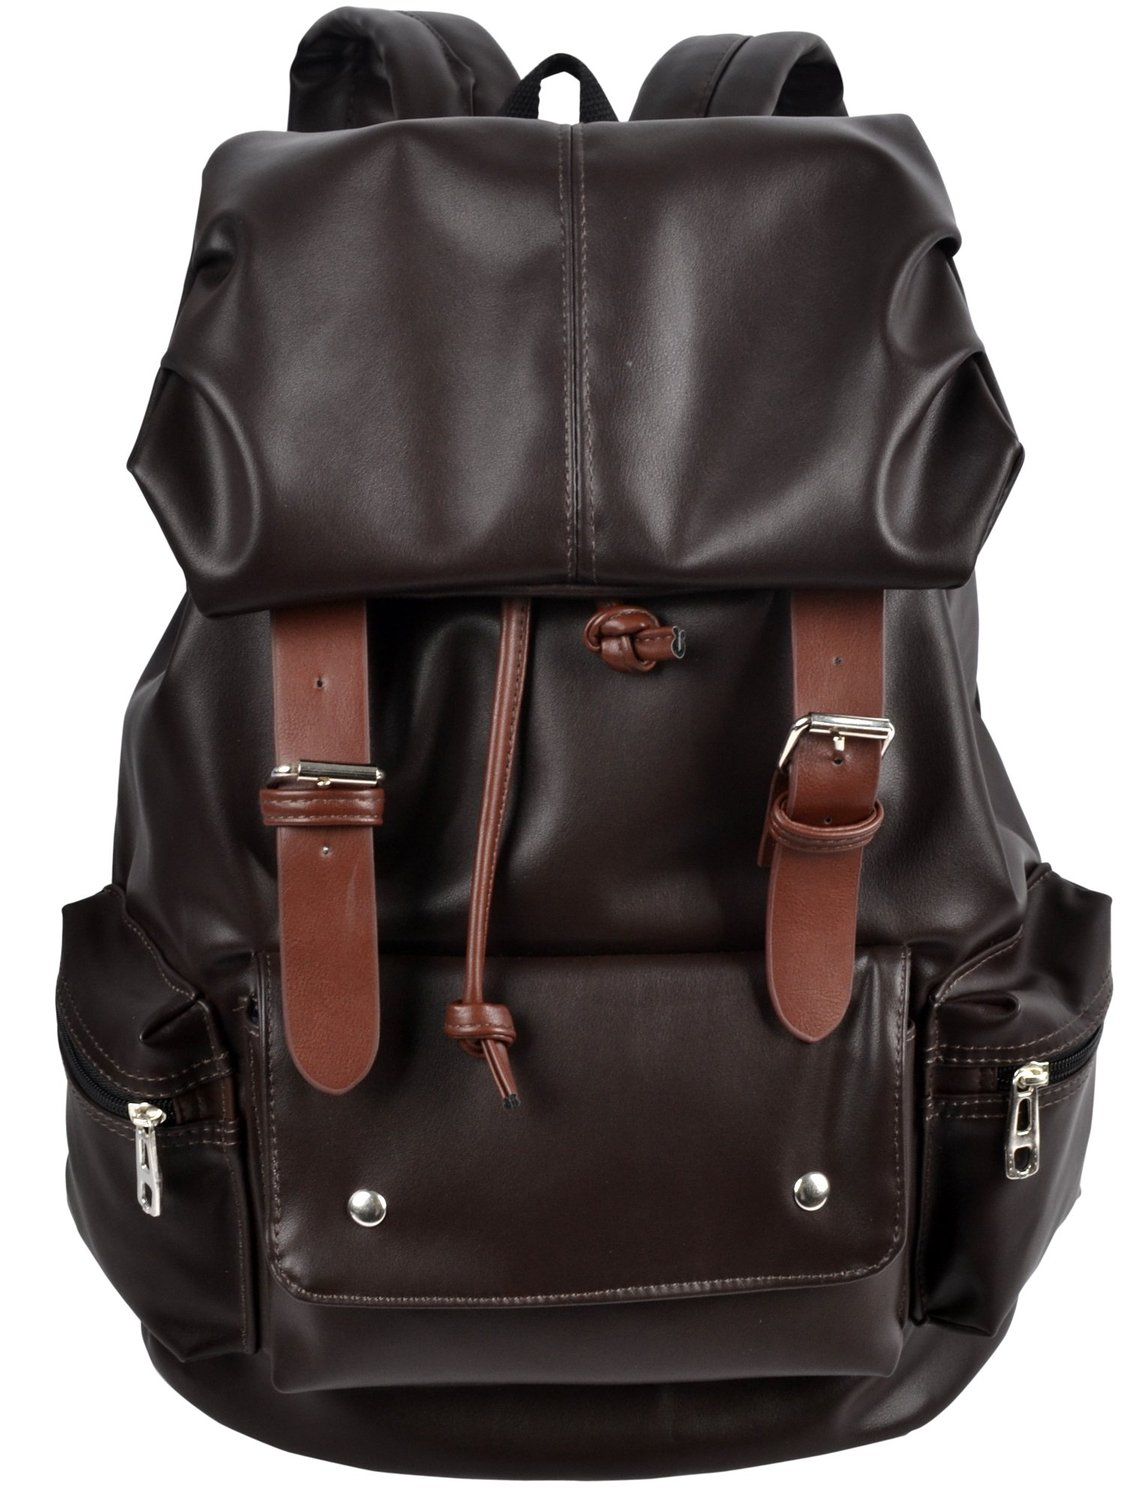 Amazon.com: Hynes Eagle Unisex's Synthetic Soft Leather School Backpack Cool Travel Bags Brown: Clothing